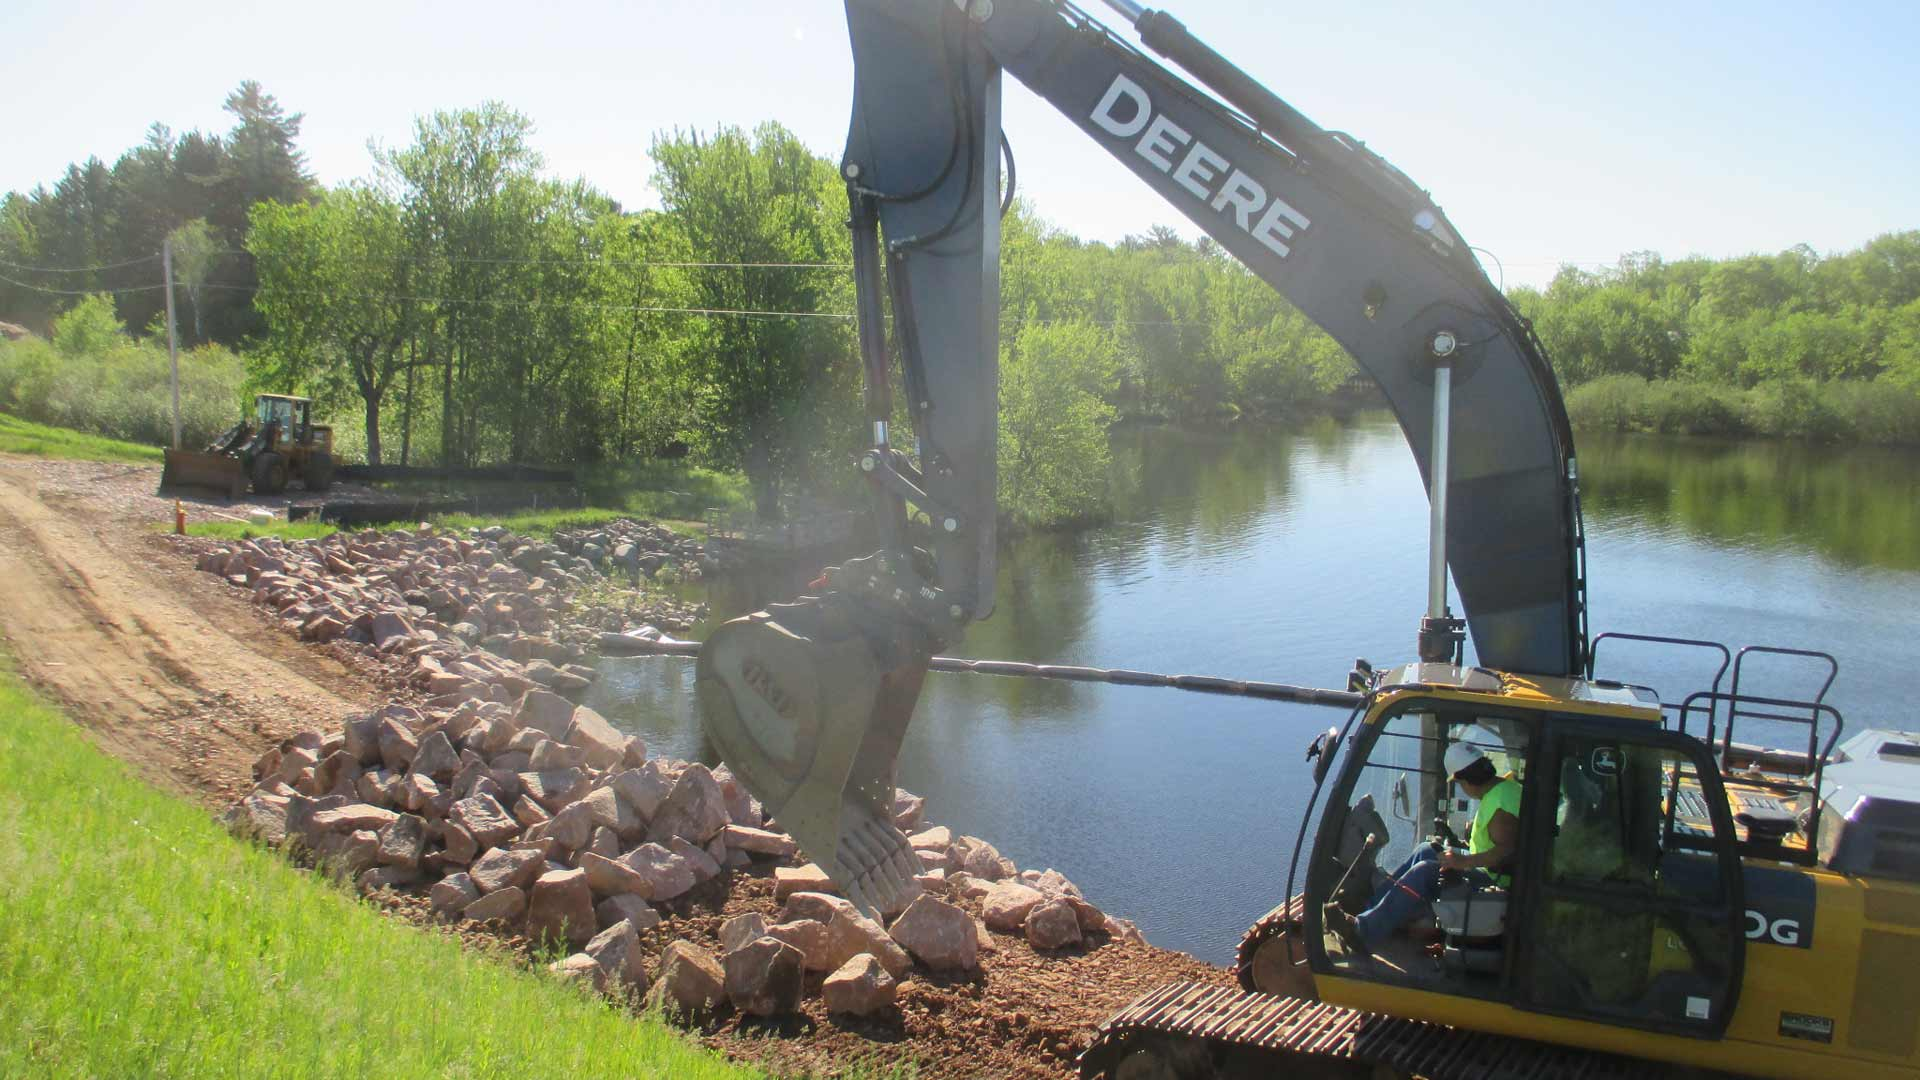 Excavator working by the water